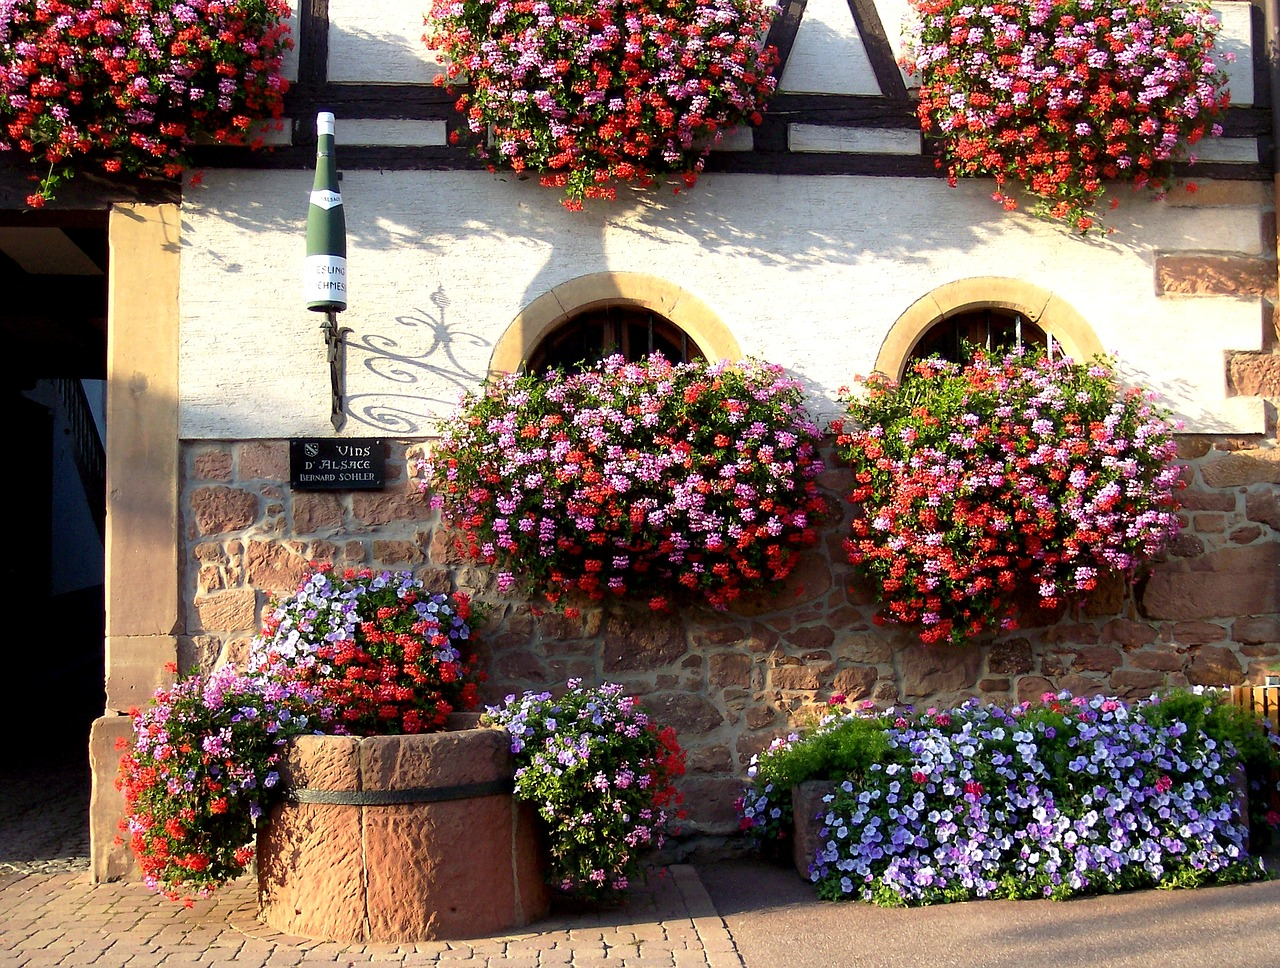 Flowers and wine in Alsace - French Immersion Homestay Thomas - Français Immersion